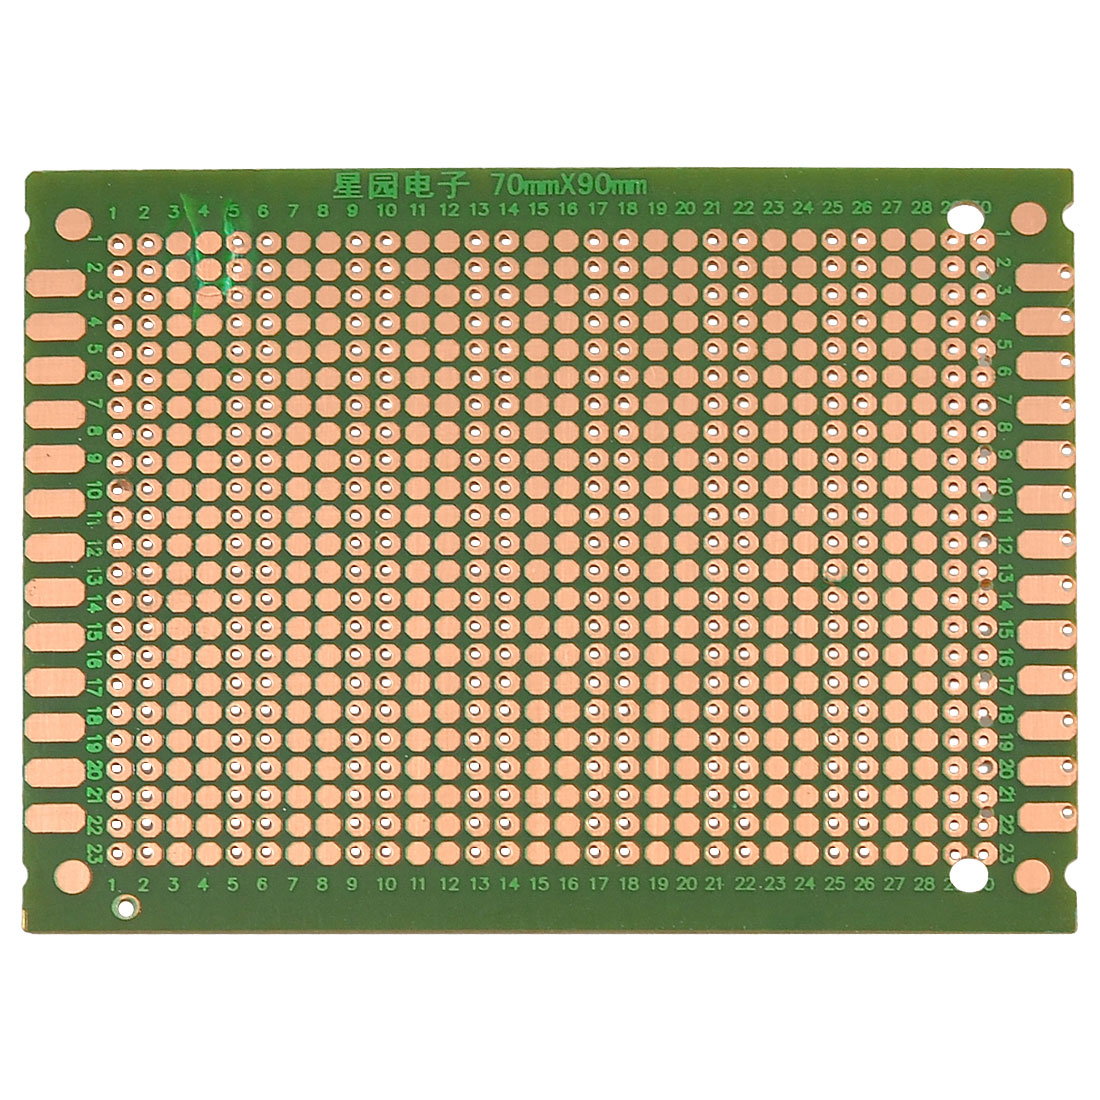 Copper Prototyping PCB Circuit Board Stripboard 70x90mm